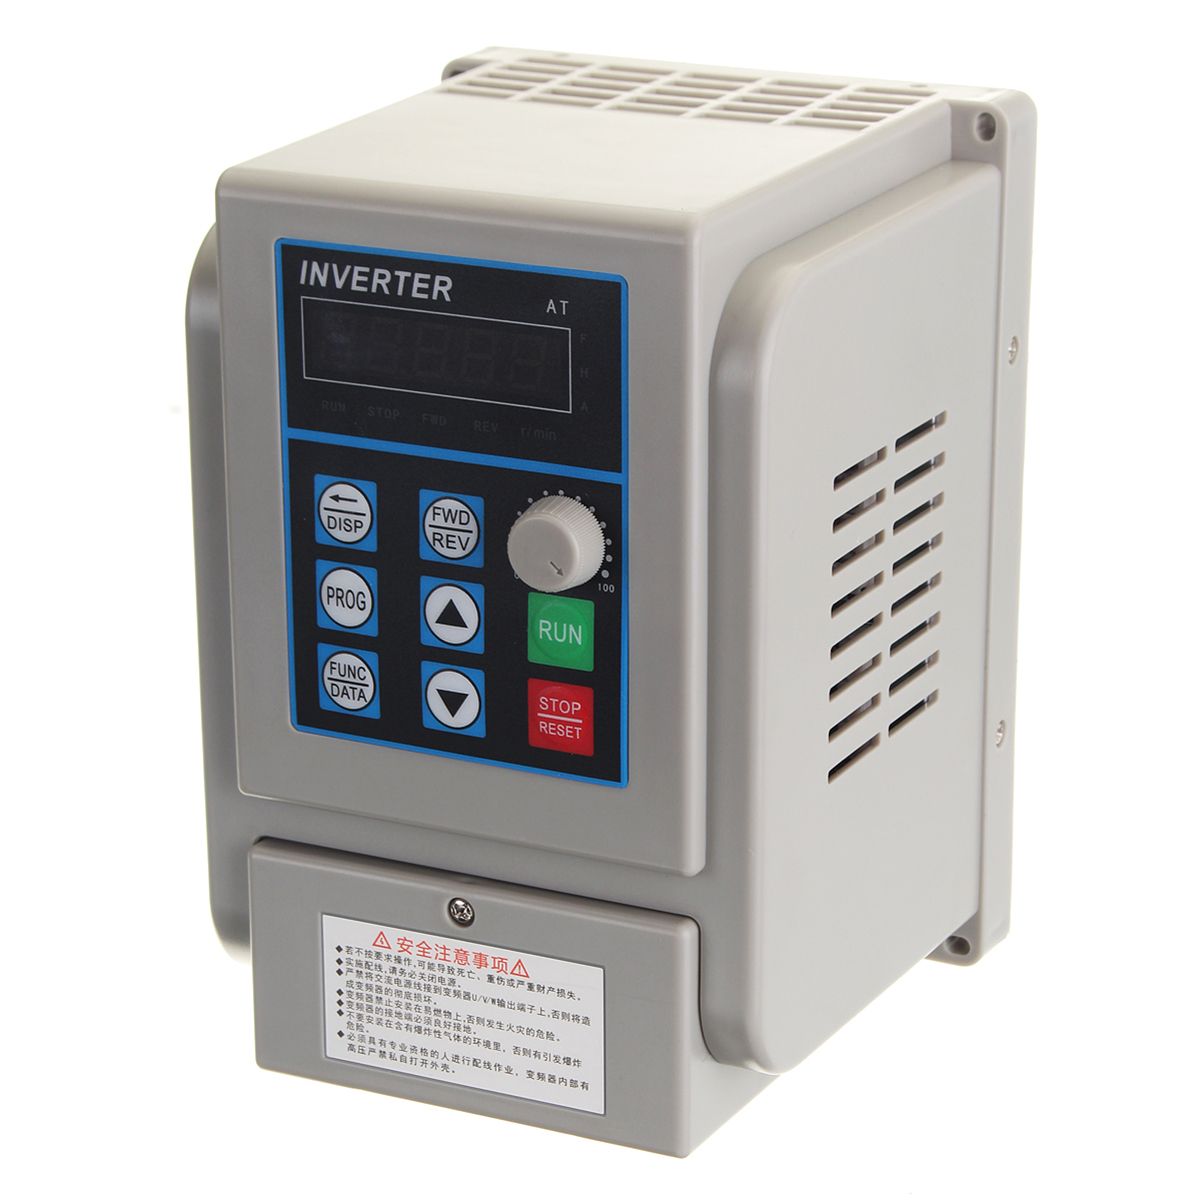 220V 2.2KW Single Phase input and 3 Phase Output Frequency Converter / Frequency Inverter /CNC Spindle motor speed control/ VFD cnc spindle motor speed control 220v 1 5kw single phase input to 220v 3 phase output frequency converter vfd vsd